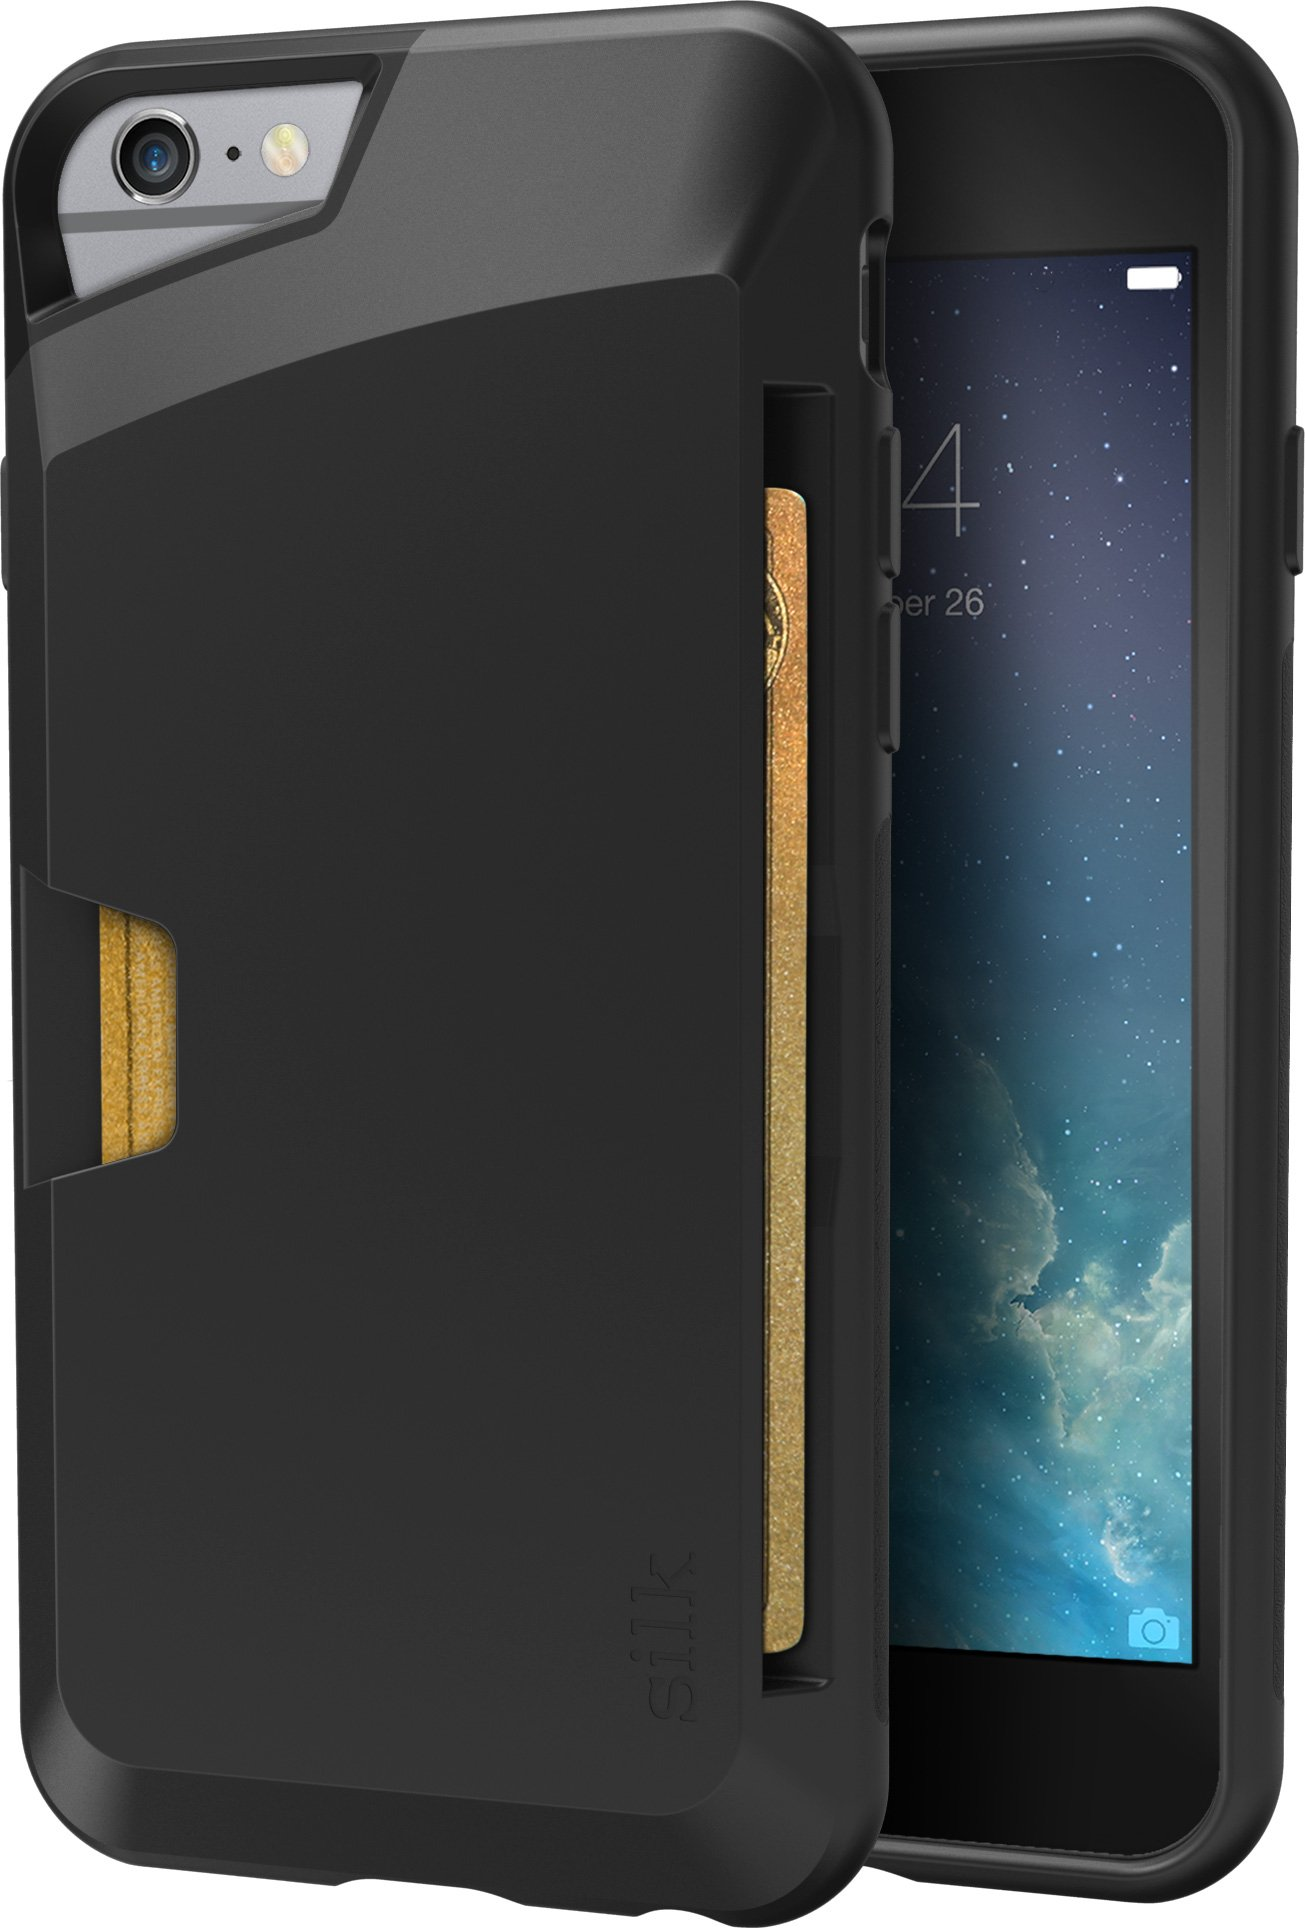 Silk iPhone 6/6s Wallet Case - VAULT Protective Credit Card Grip Cover -''Wallet Slayer Vol.1'' - Black Onyx